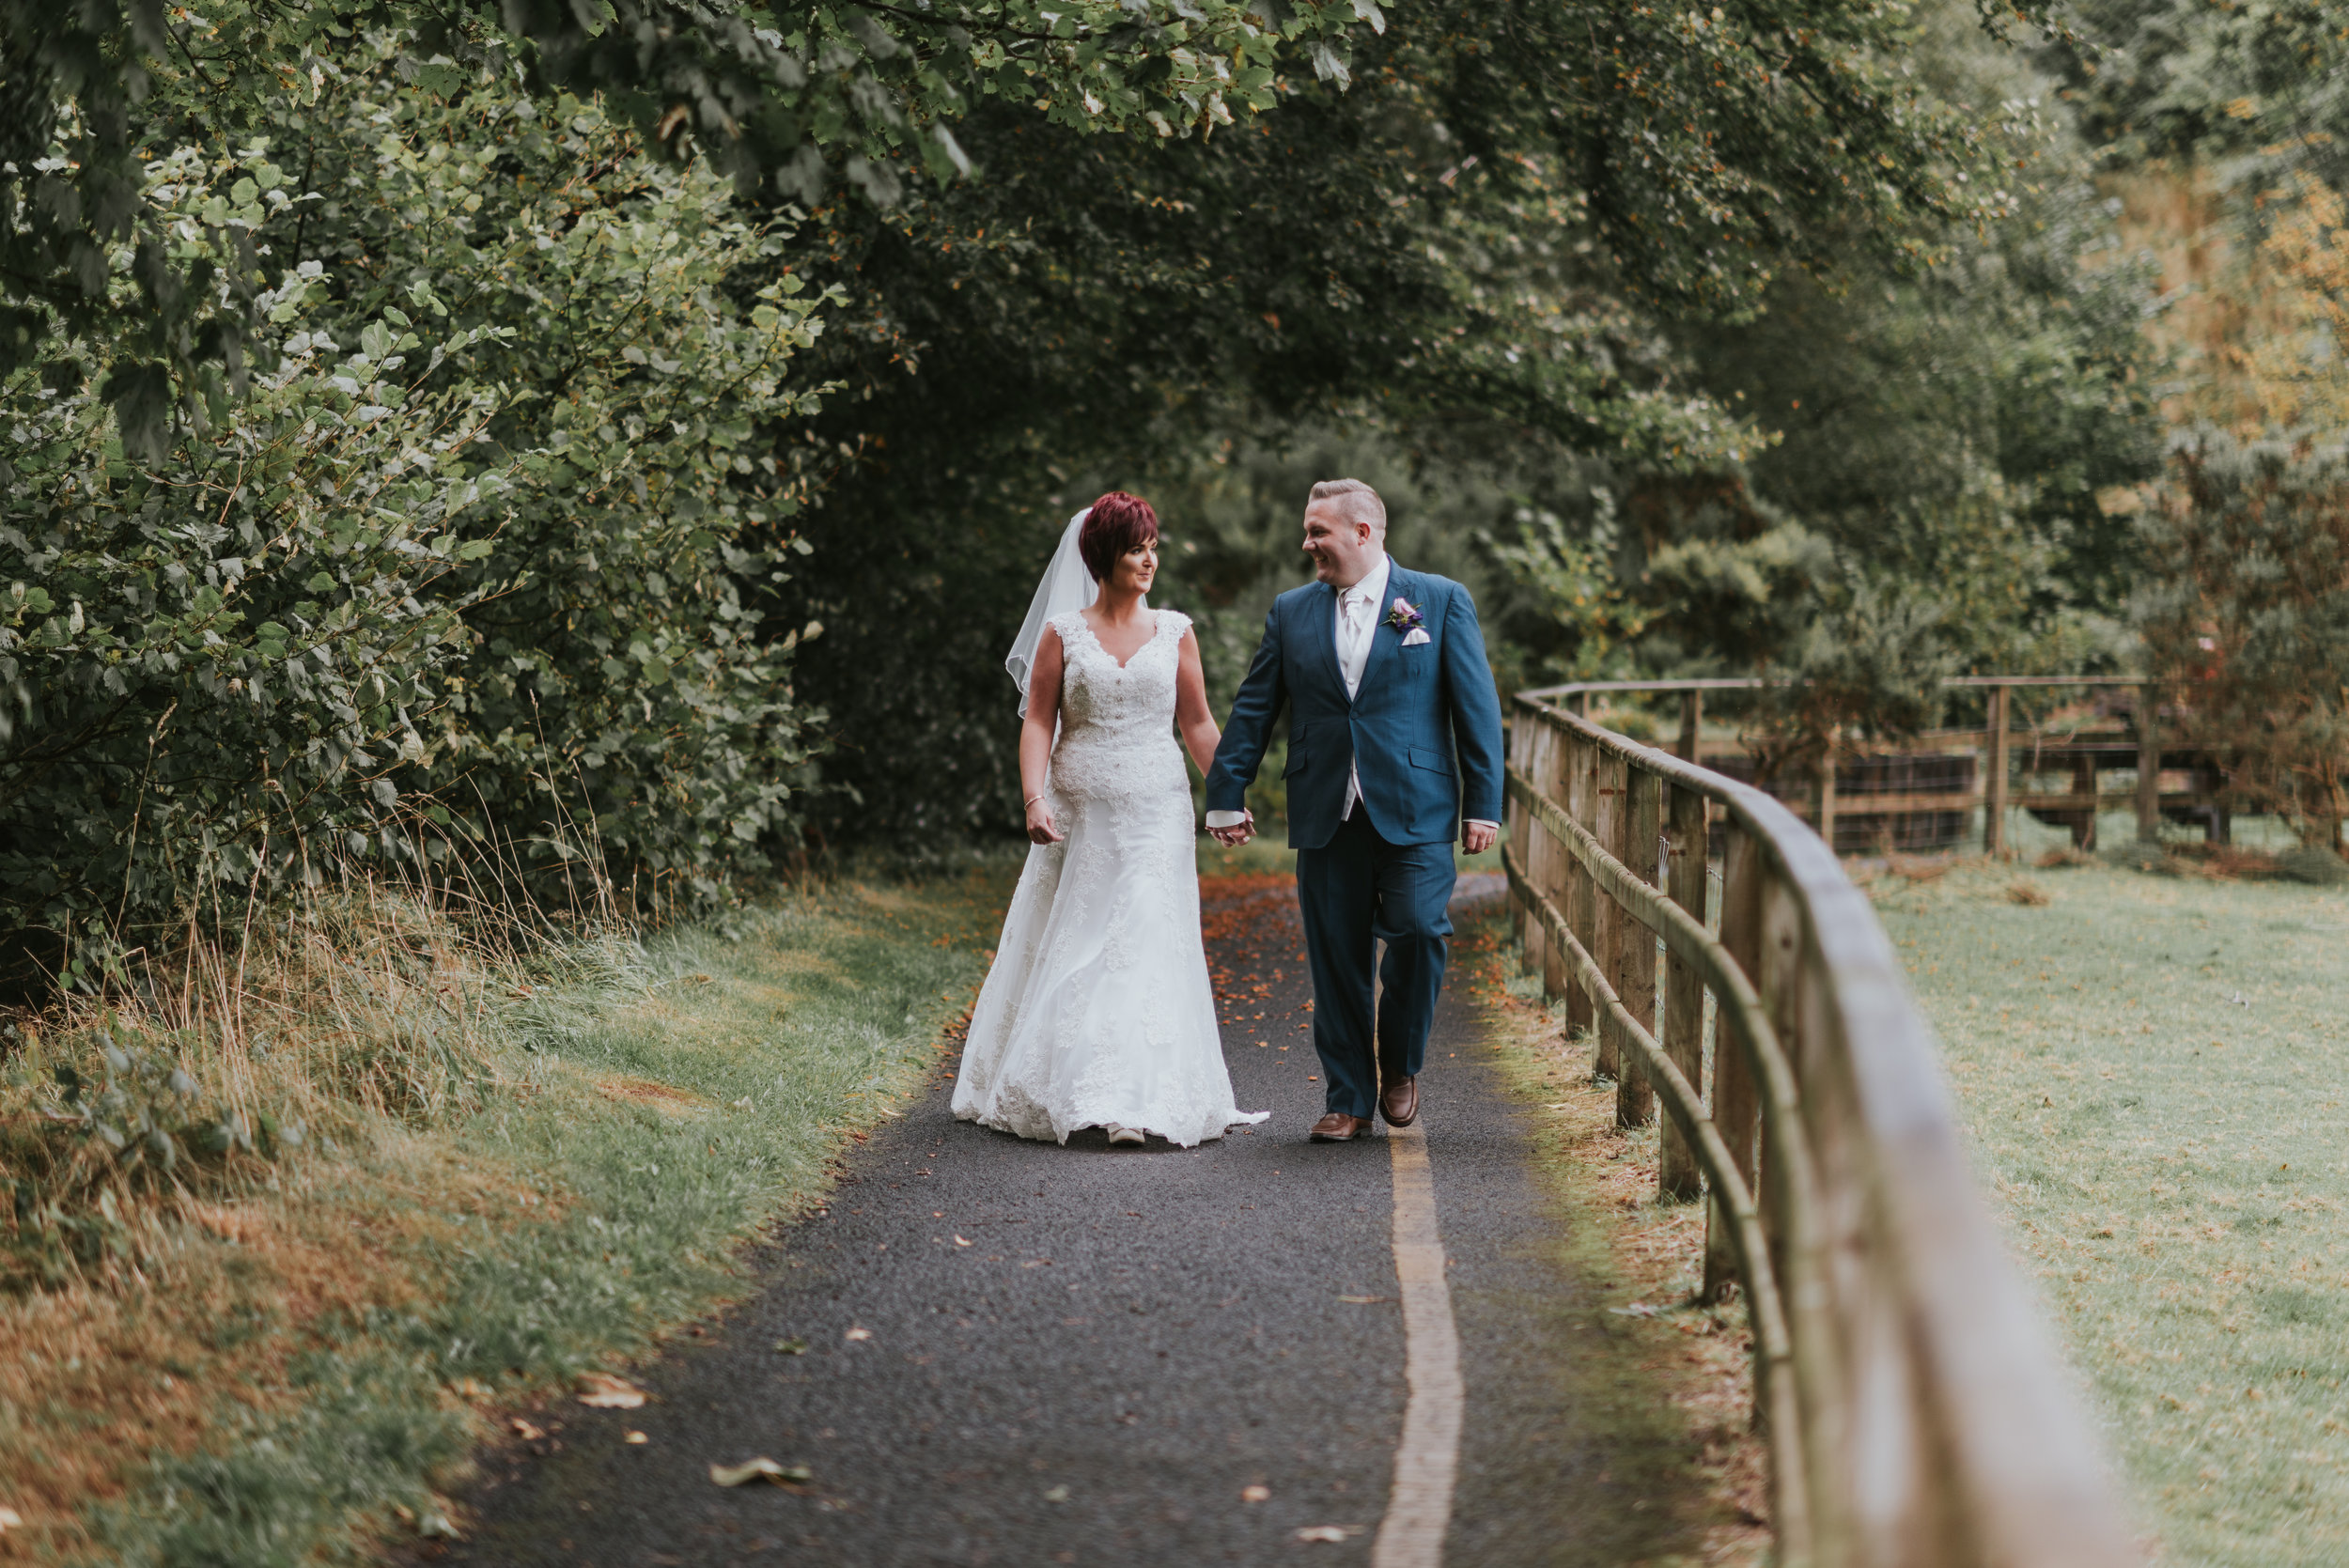 Roe Park Wedding Photographer Pure Photo N.I bride and groom